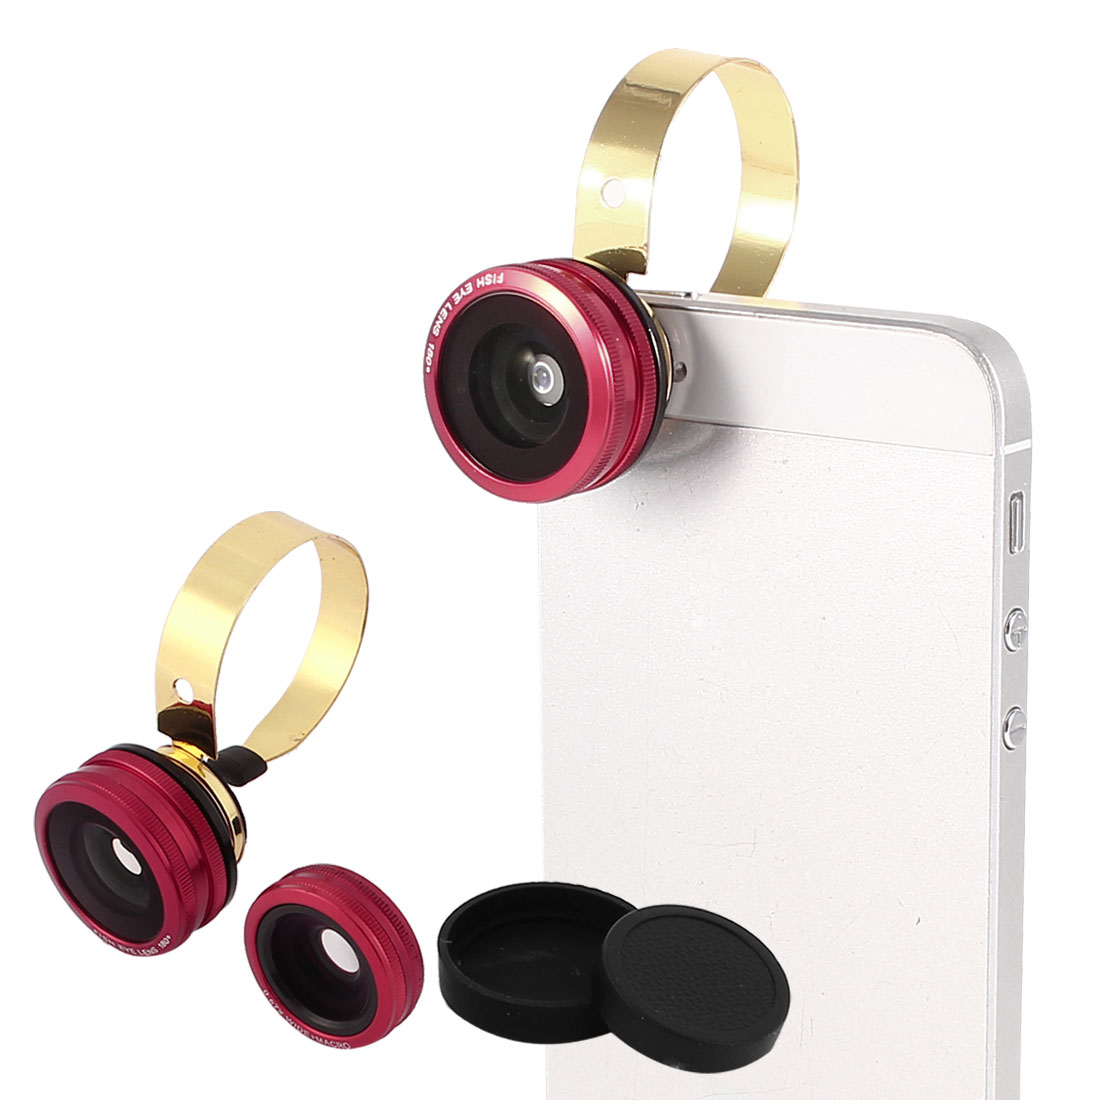 Red 180 Degree Fish Eye Lens + Wide Angle + Micro Lens for Mobile Phone